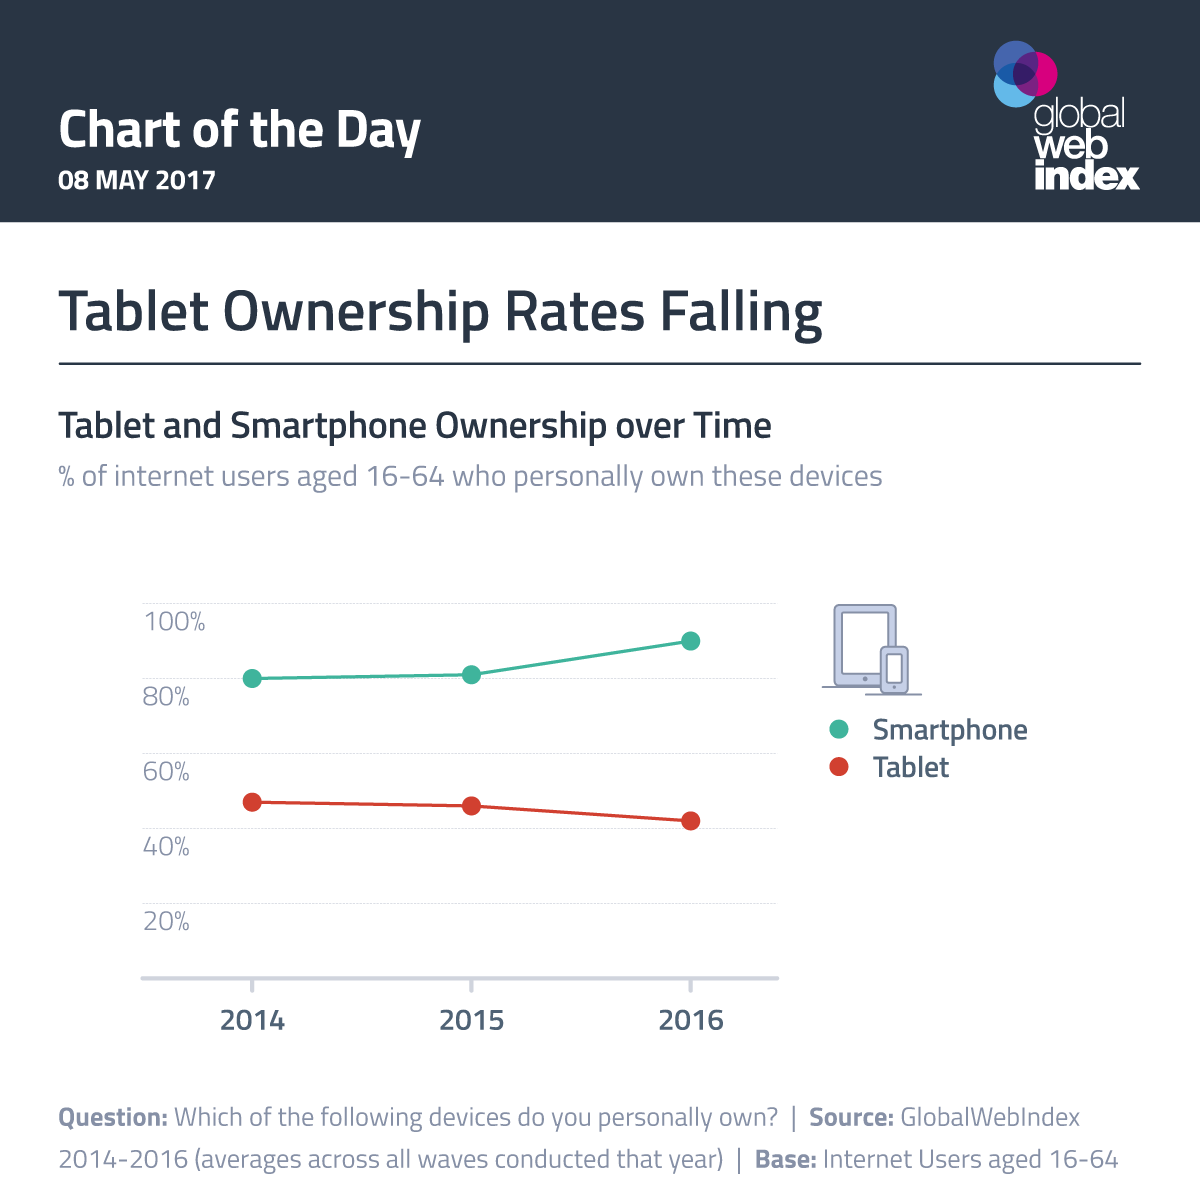 Tablet Ownership Rates Falling